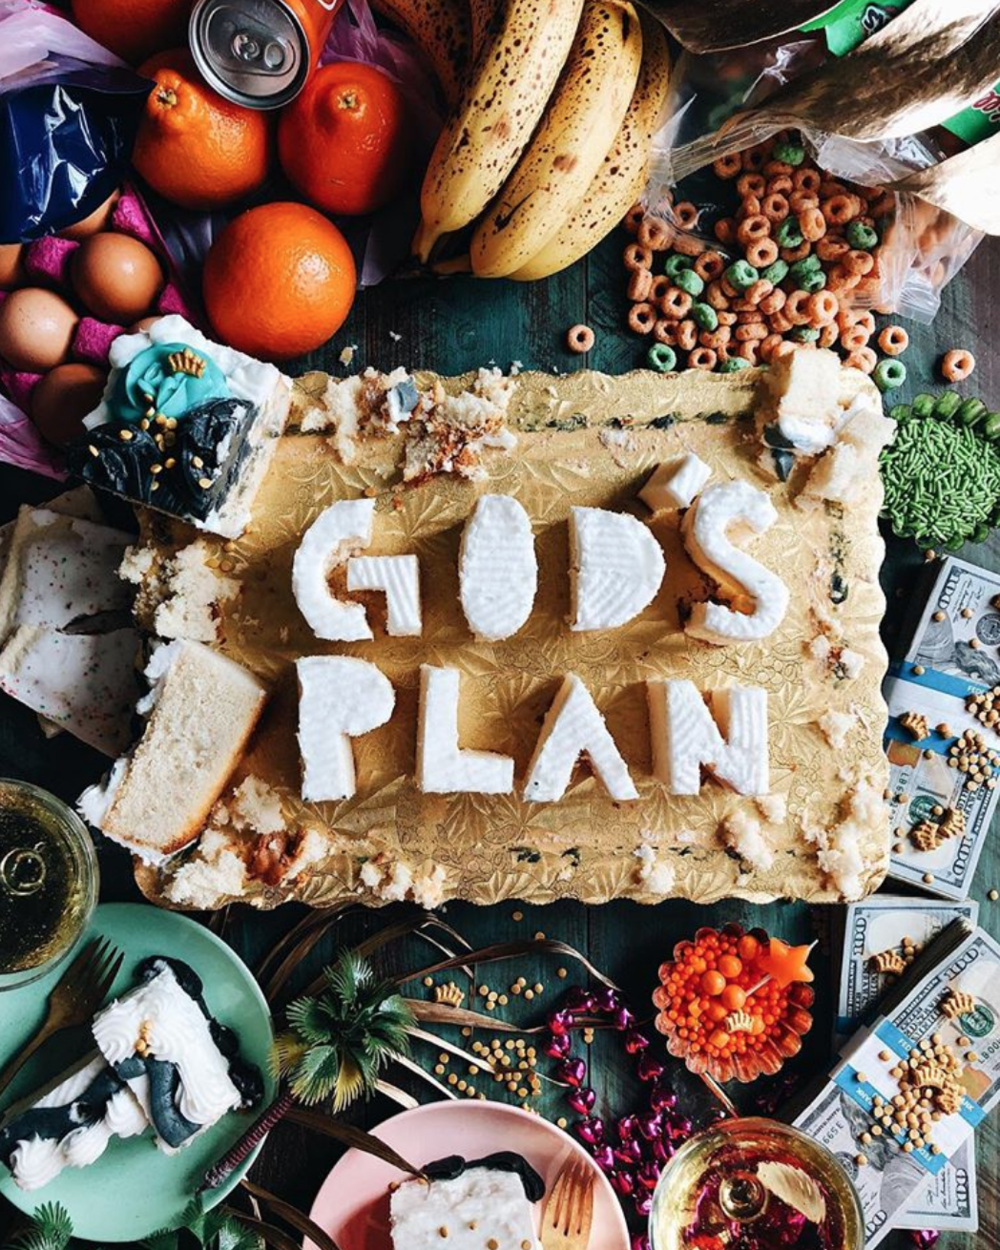 gods plan drake on cake